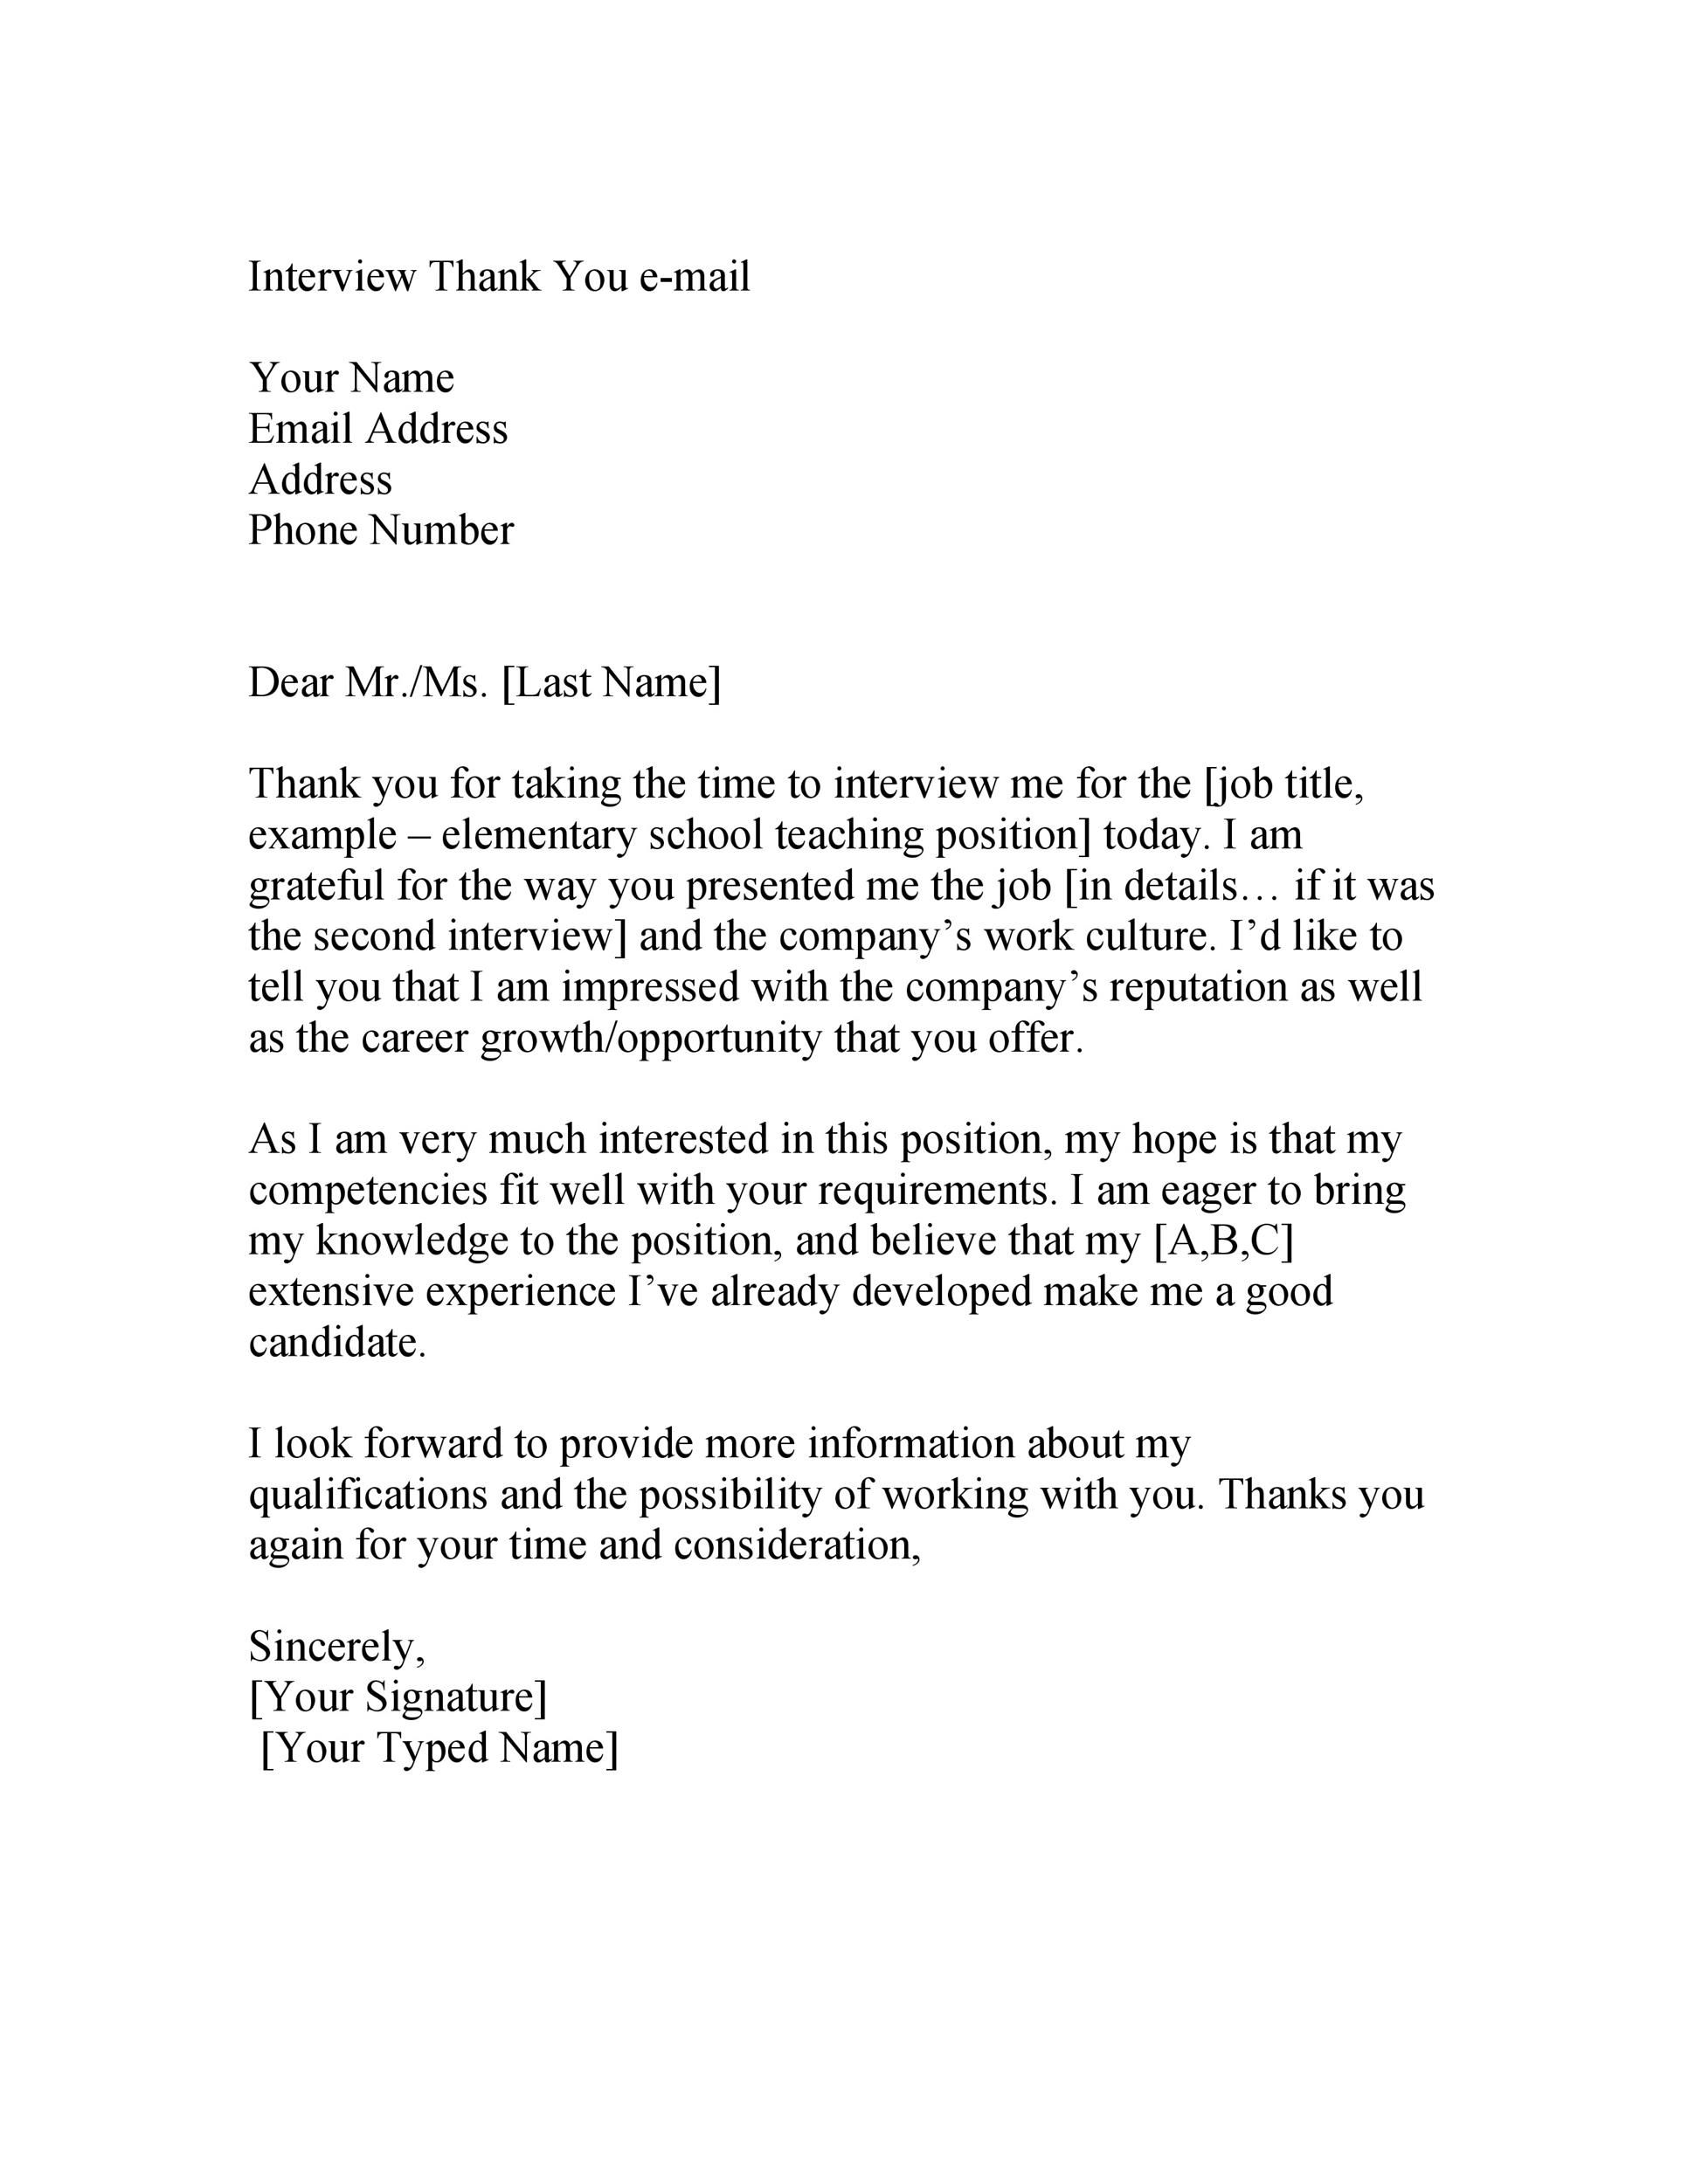 006 Formidable Thank You Note Template For Interview High Resolution  Card Example After Letter JobFull